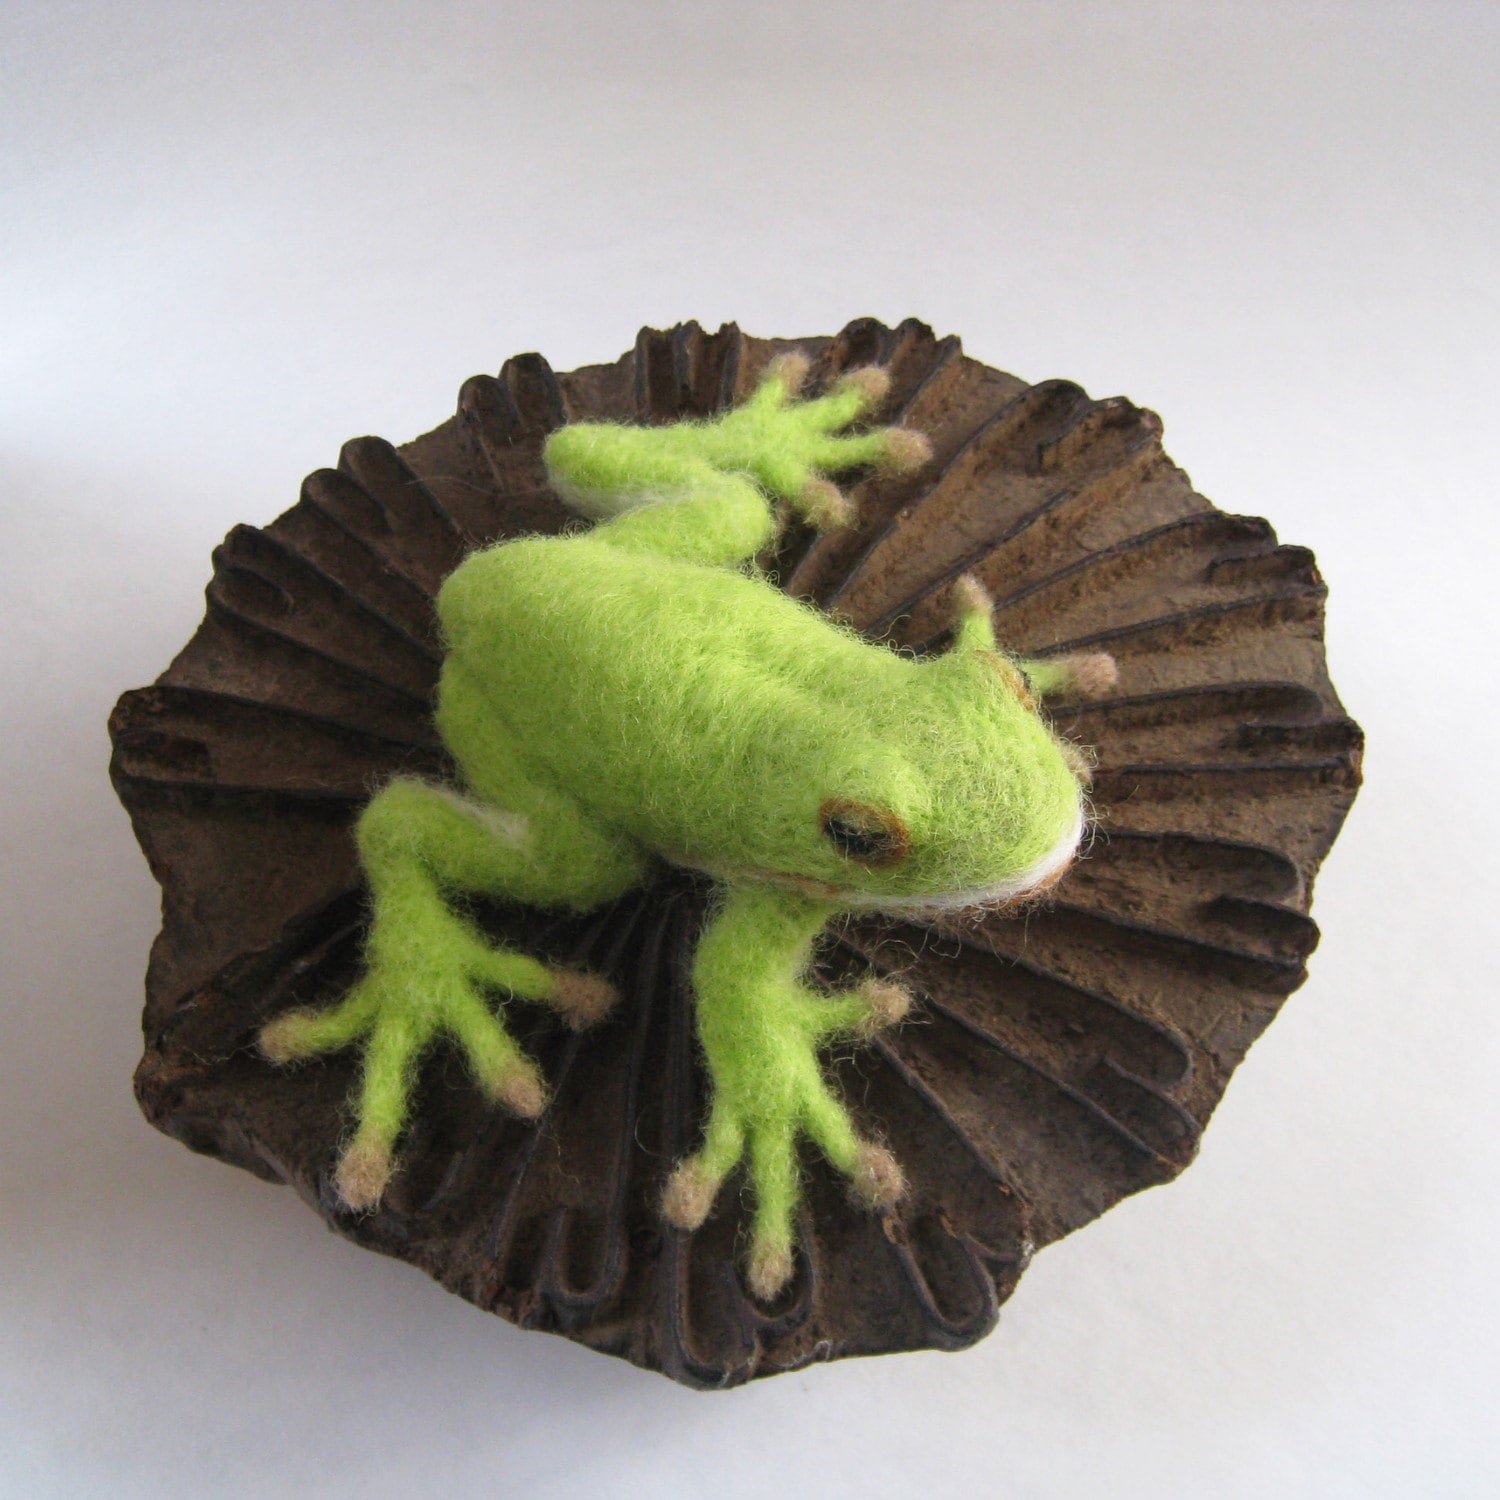 Greenie the green tree frog, needlefelted animal